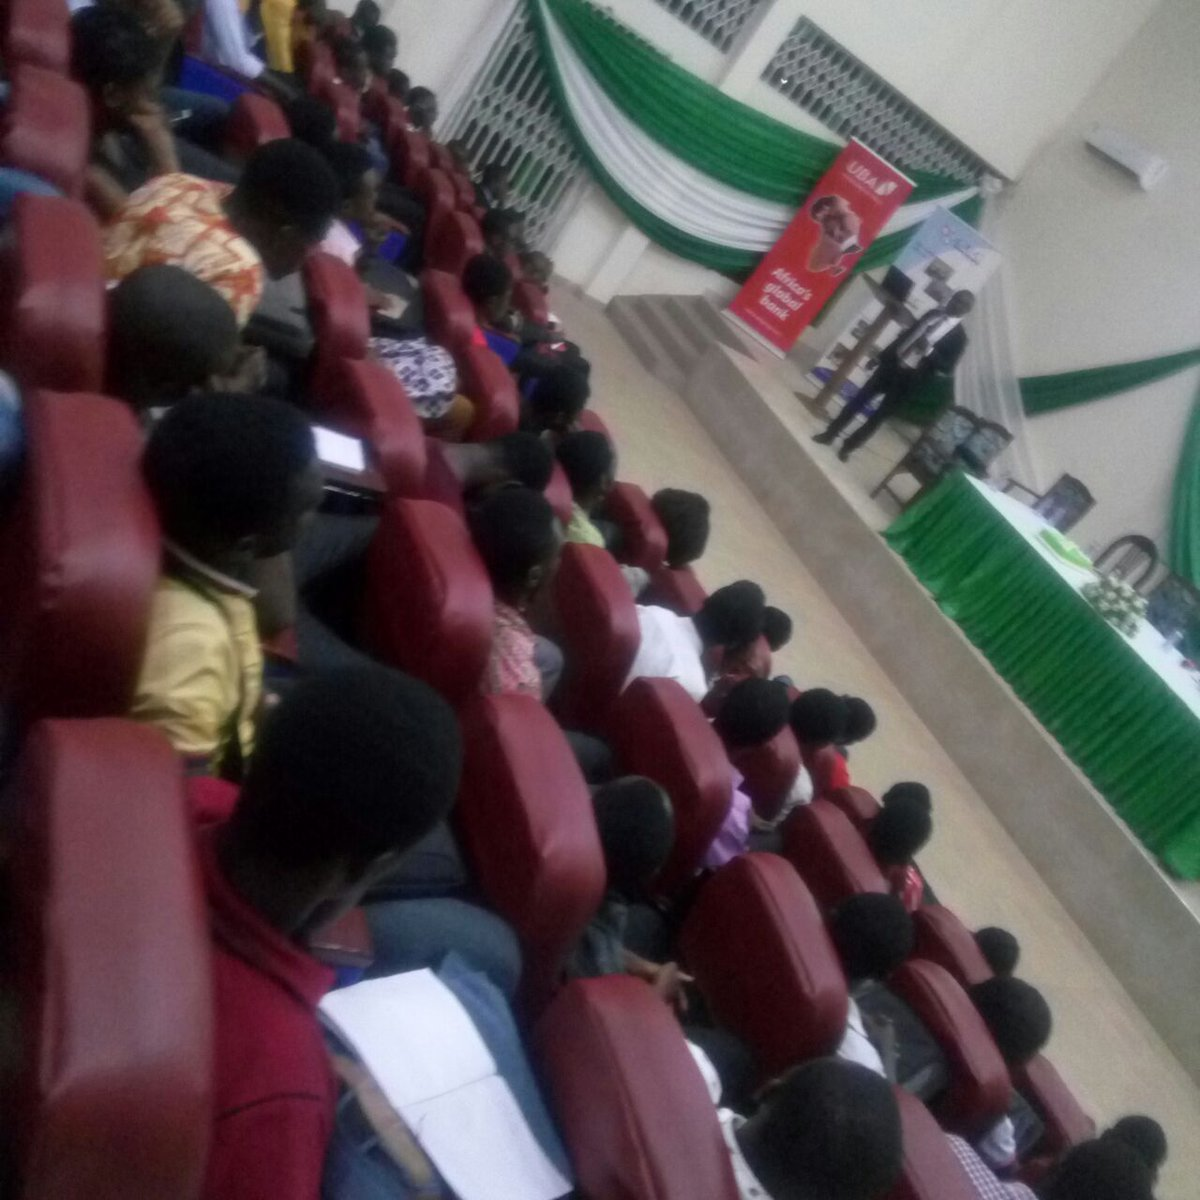 Day 2 of the 11th SRC Week Cele Launching and Seminar ongoing @ the mini auditorium After School what NEXT??? #UmatSRCweek17  #bhim <br>http://pic.twitter.com/OOfCkye0du